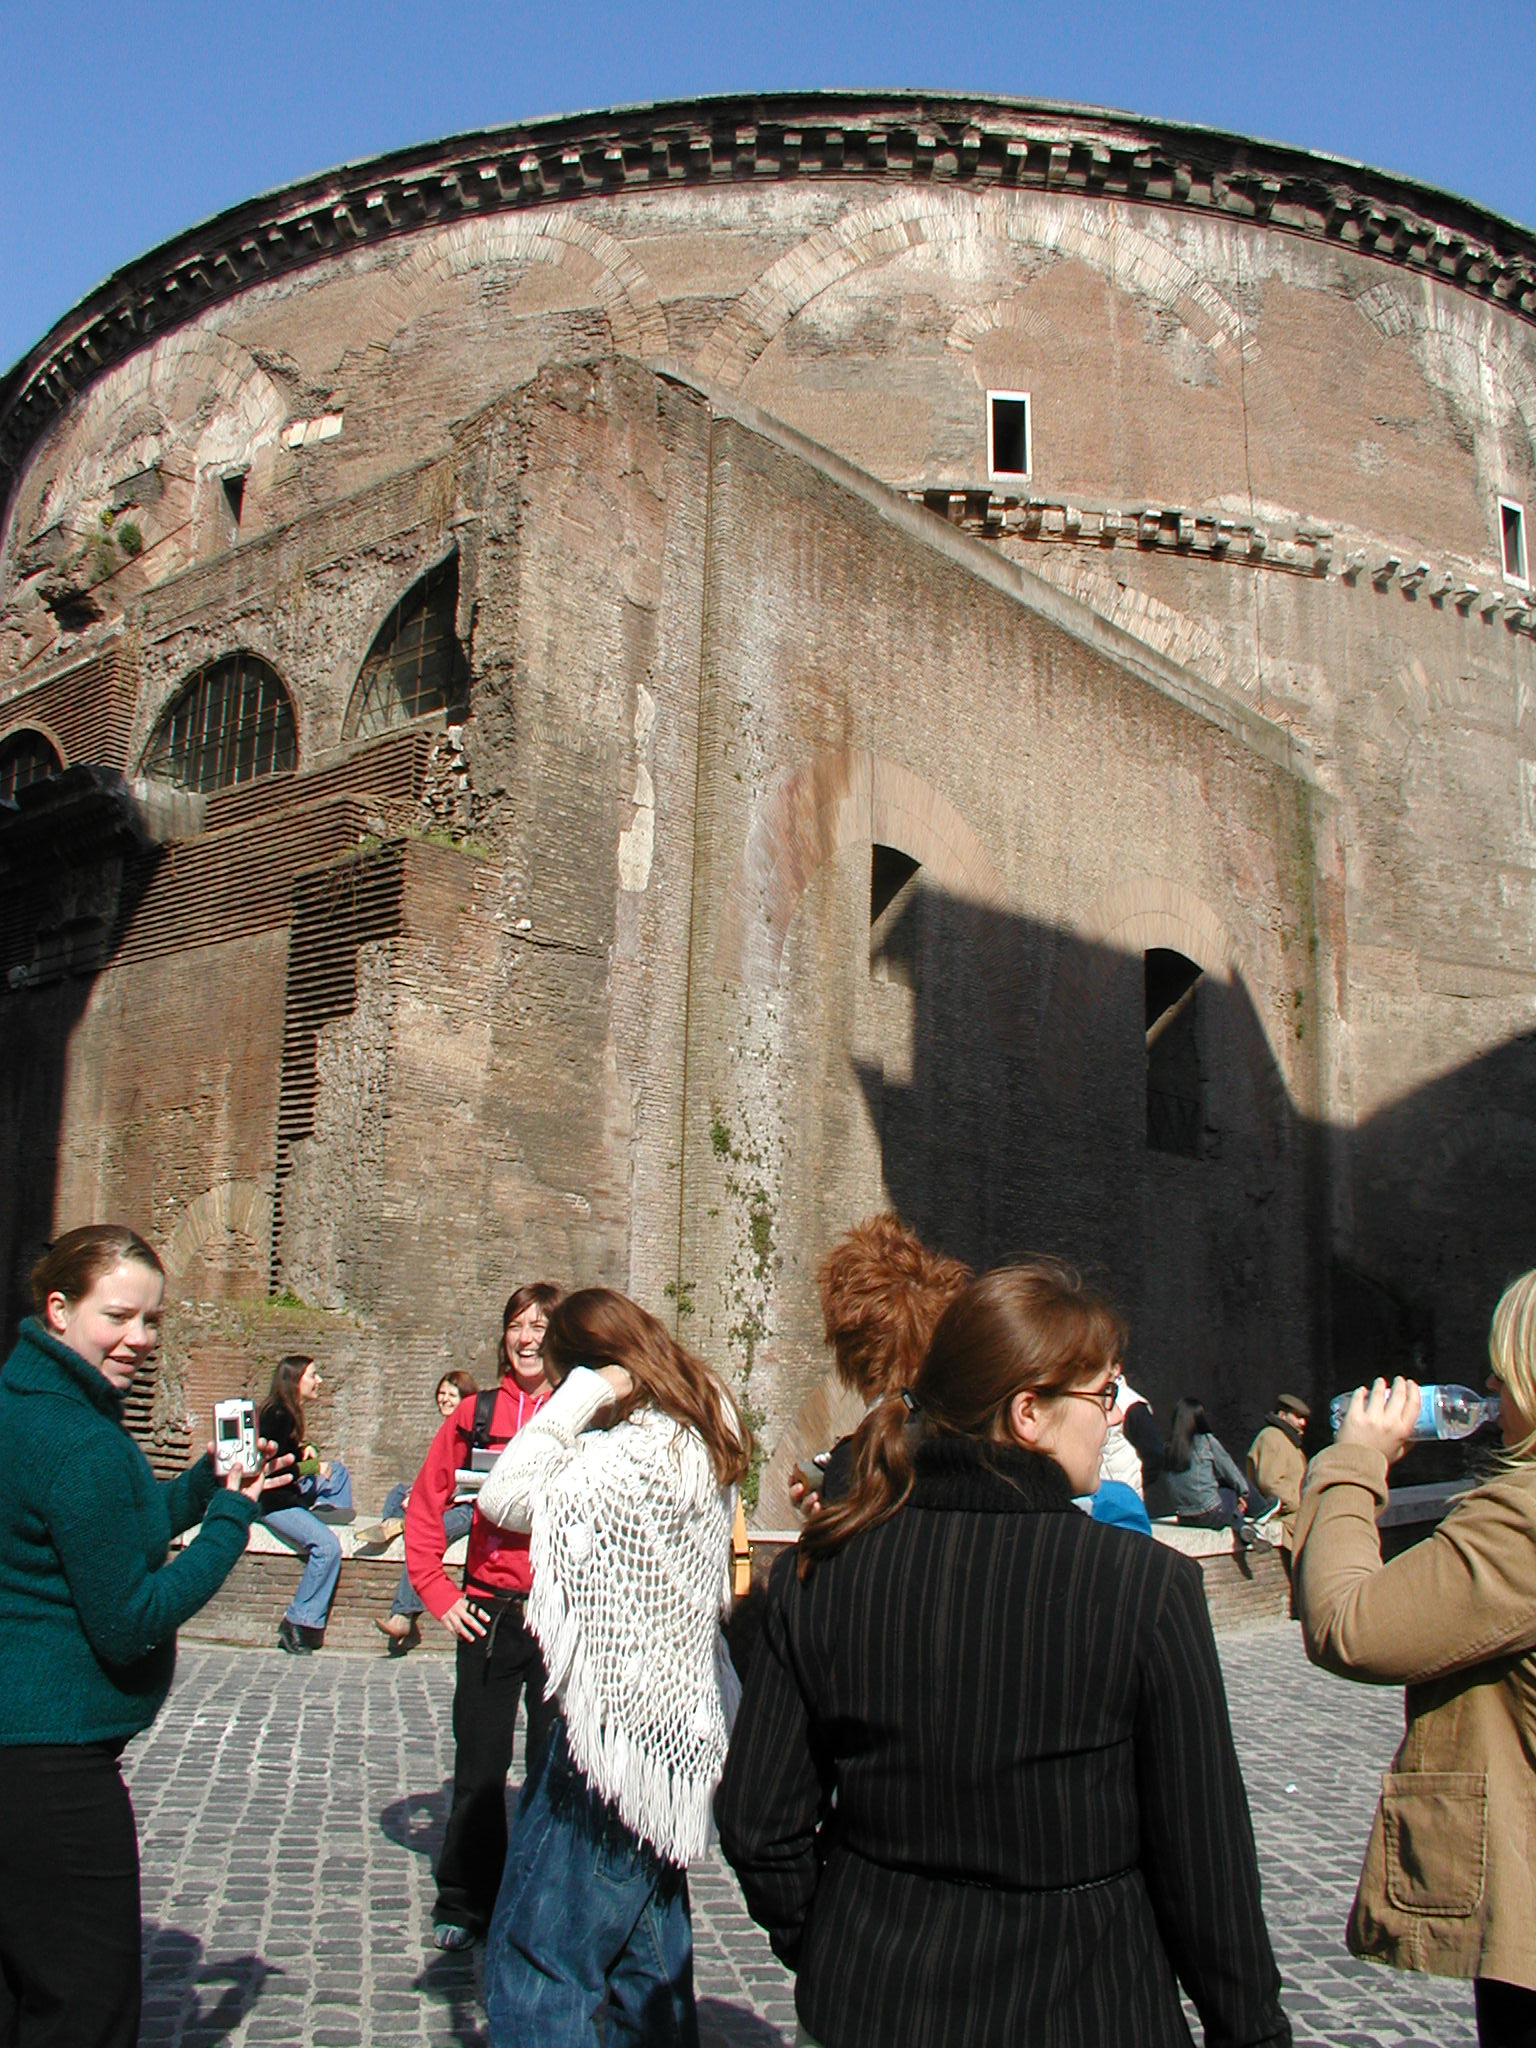 tabus italy pantheon rome people tourists characters humanoids women crowd architecture exteriors